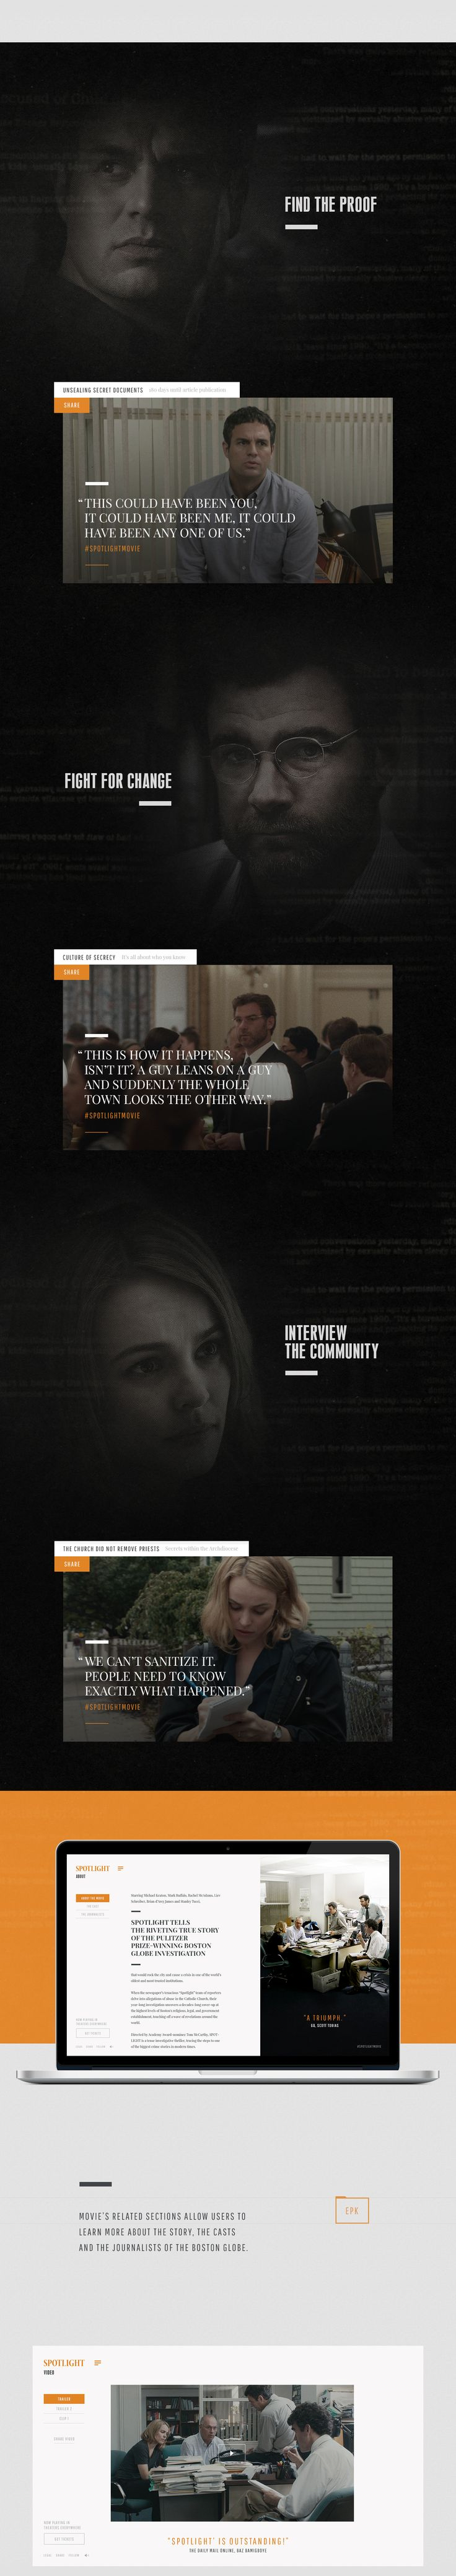 Official Spotlight website.Spotlight is the Best Picture and Best Original Screenplay academy award winner 2016. The movie is about the true story of how the Boston Globe uncovered the massive scandal of child molestation and cover-up within the local Ca…